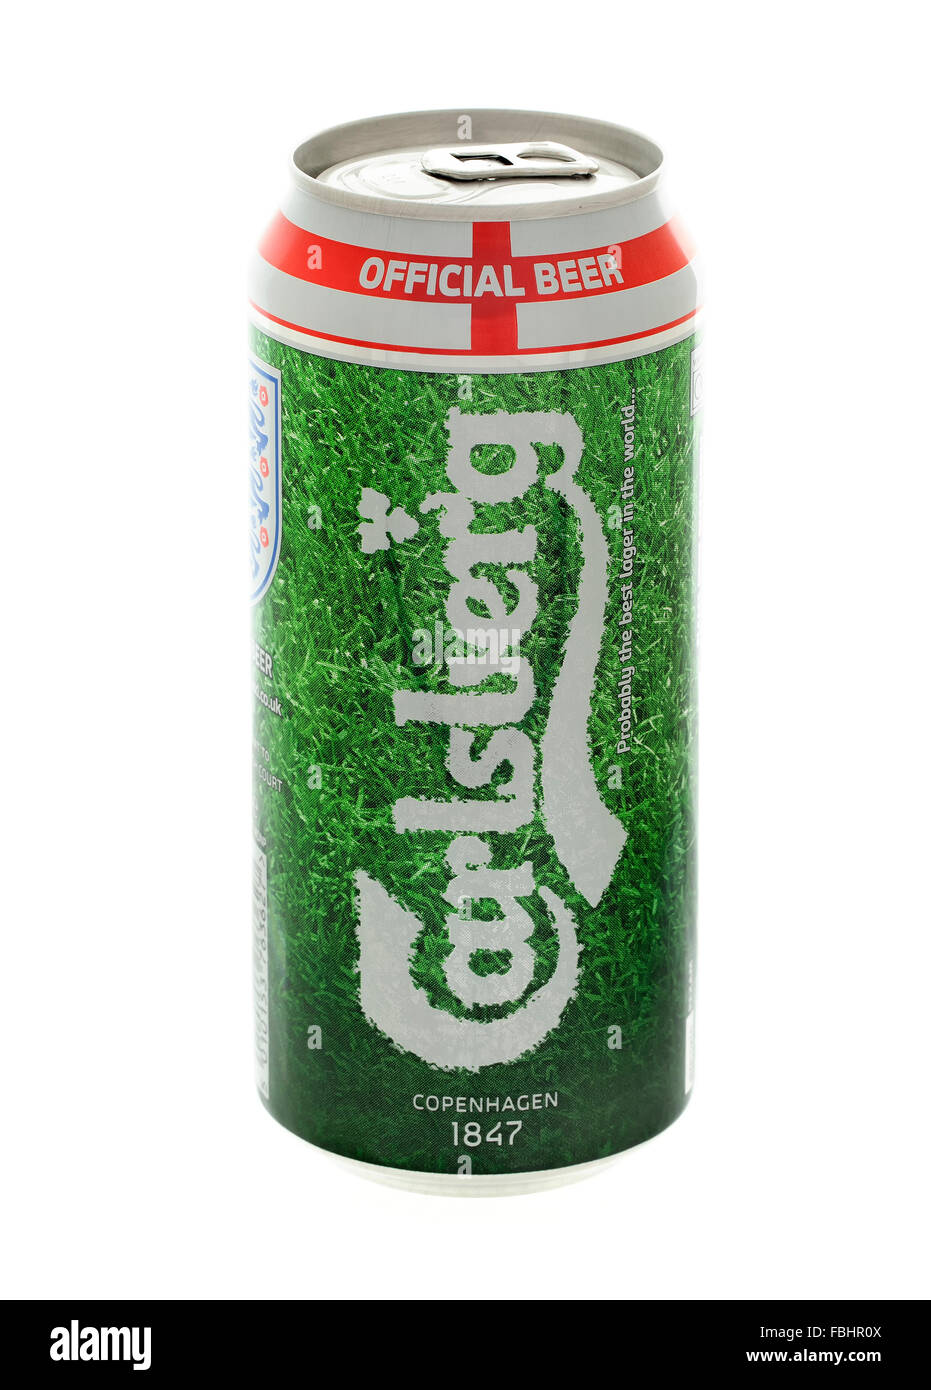 Can of Carlsberg the official Beer of the England football team 2014 World Cup on a white background - Stock Image